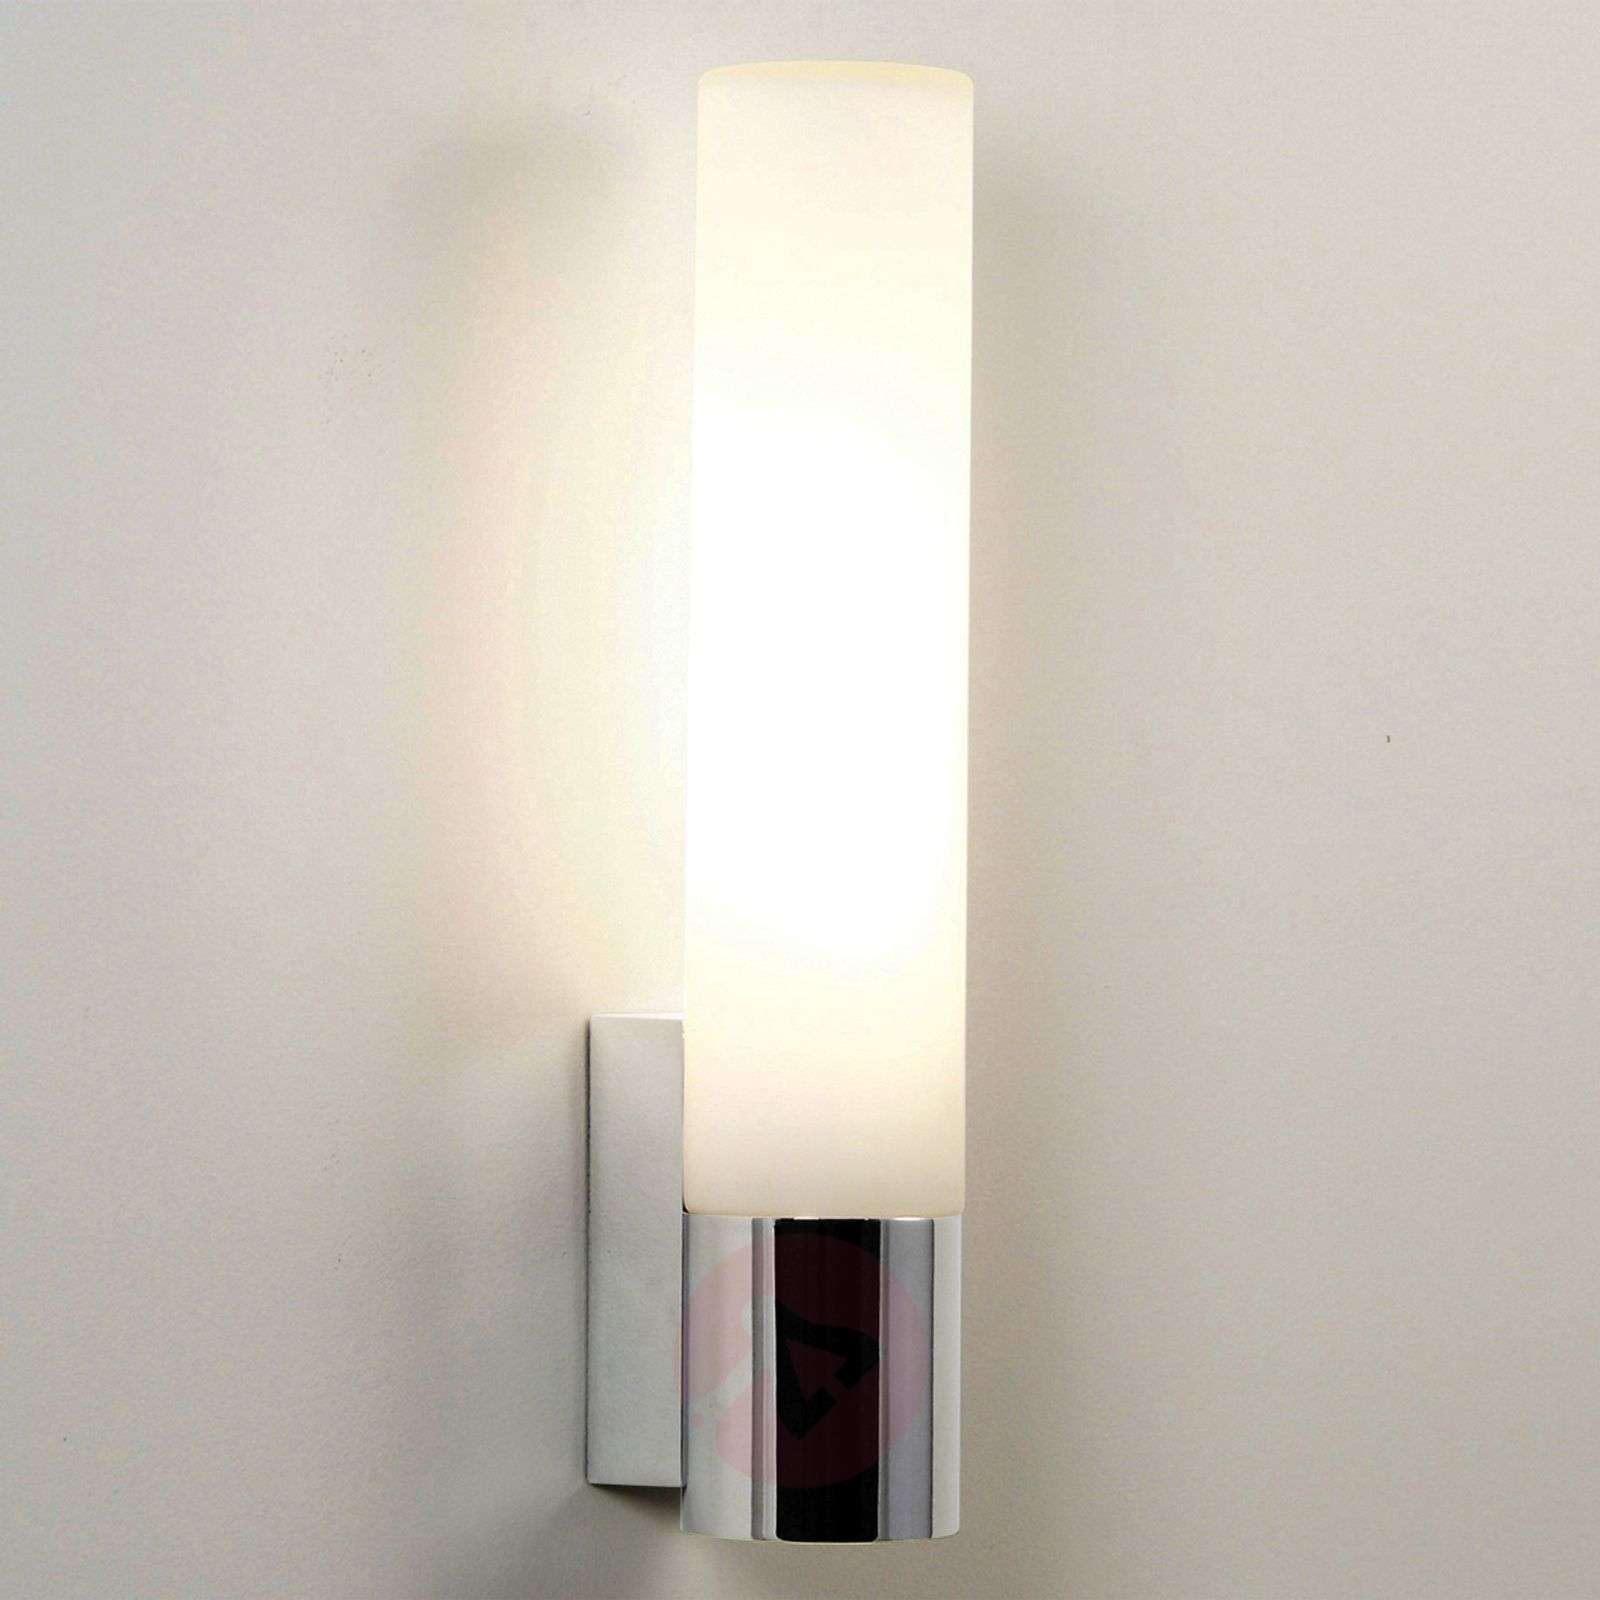 Kyoto Bathroom Wall Light Narrow-1020292-03